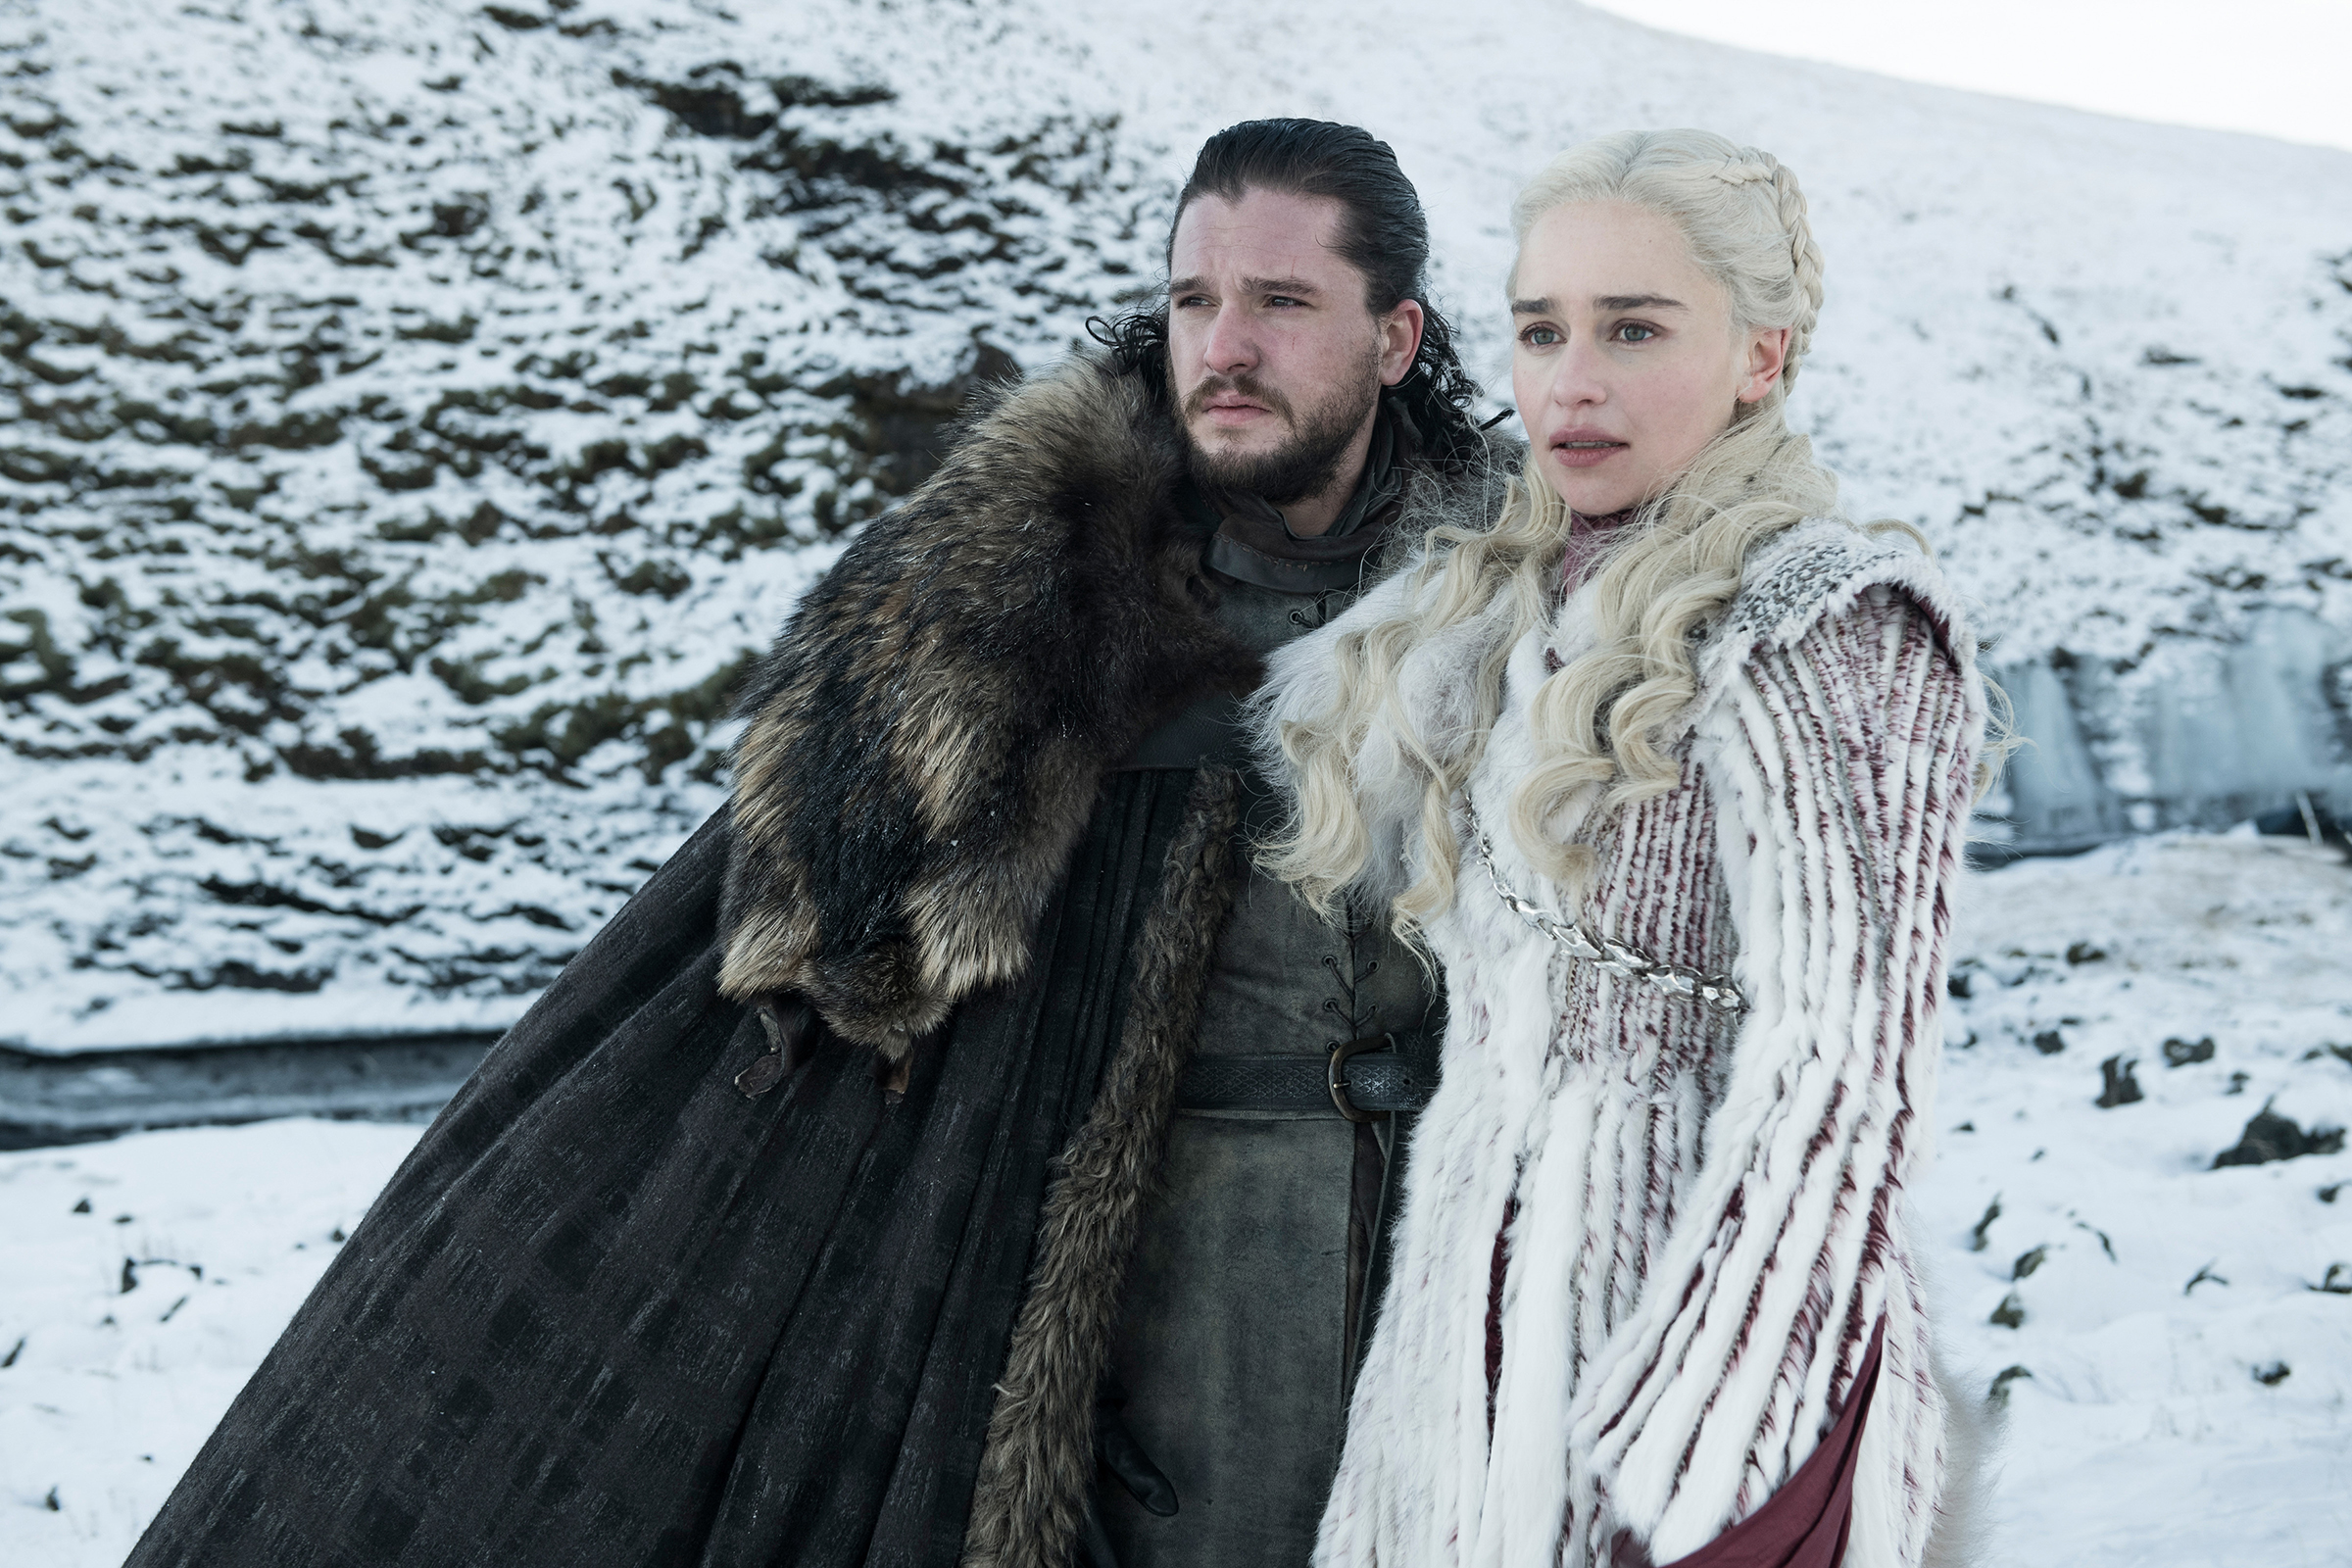 'Game of Thrones' Season Premiere Recap: The Return of the King